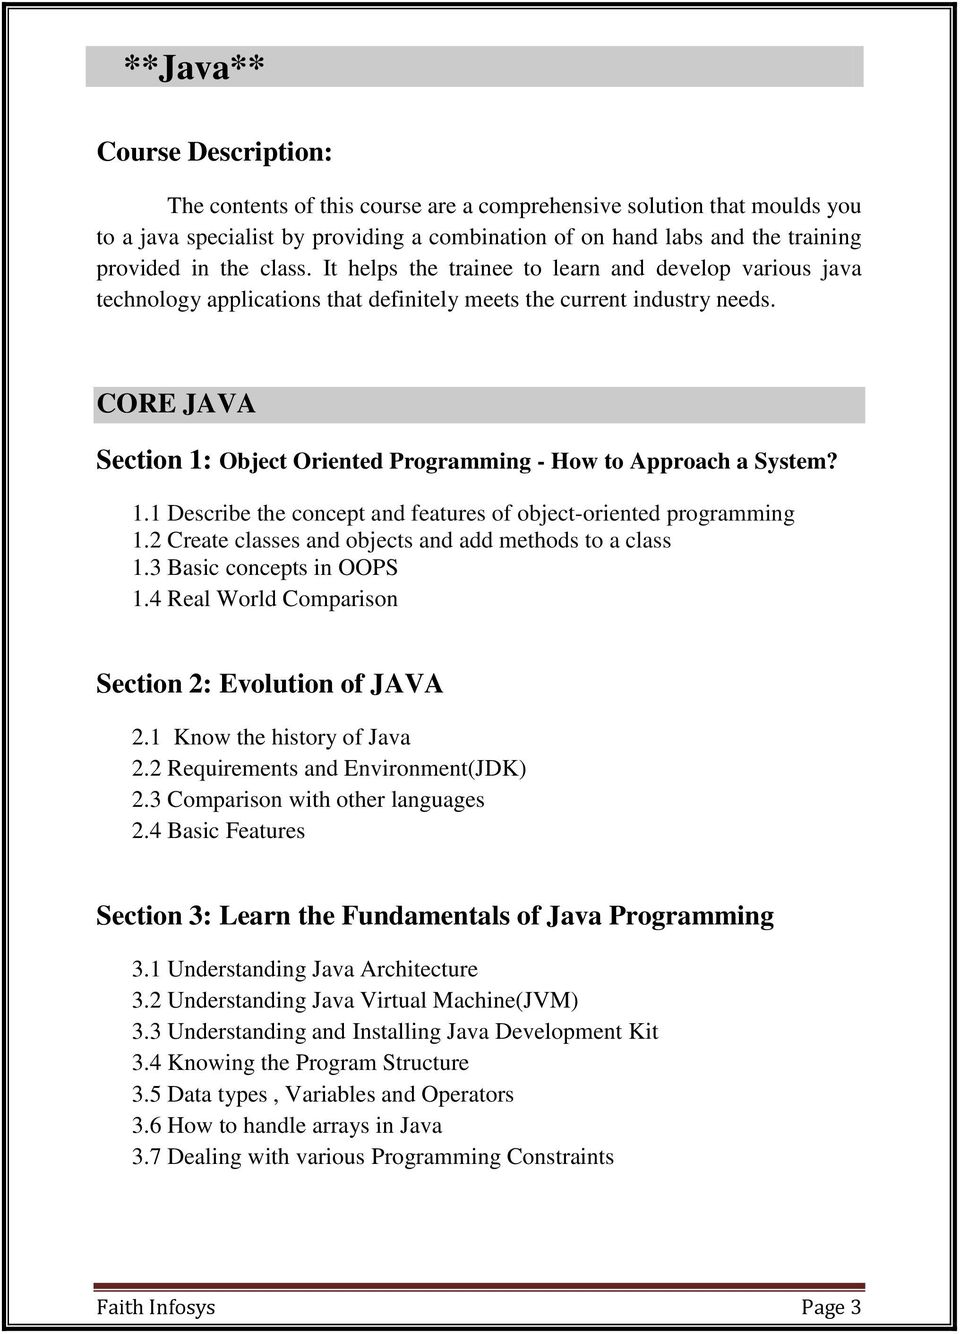 CORE JAVA Section 1: Object Oriented Programming - How to Approach a System? 1.1 Describe the concept and features of object-oriented programming 1.